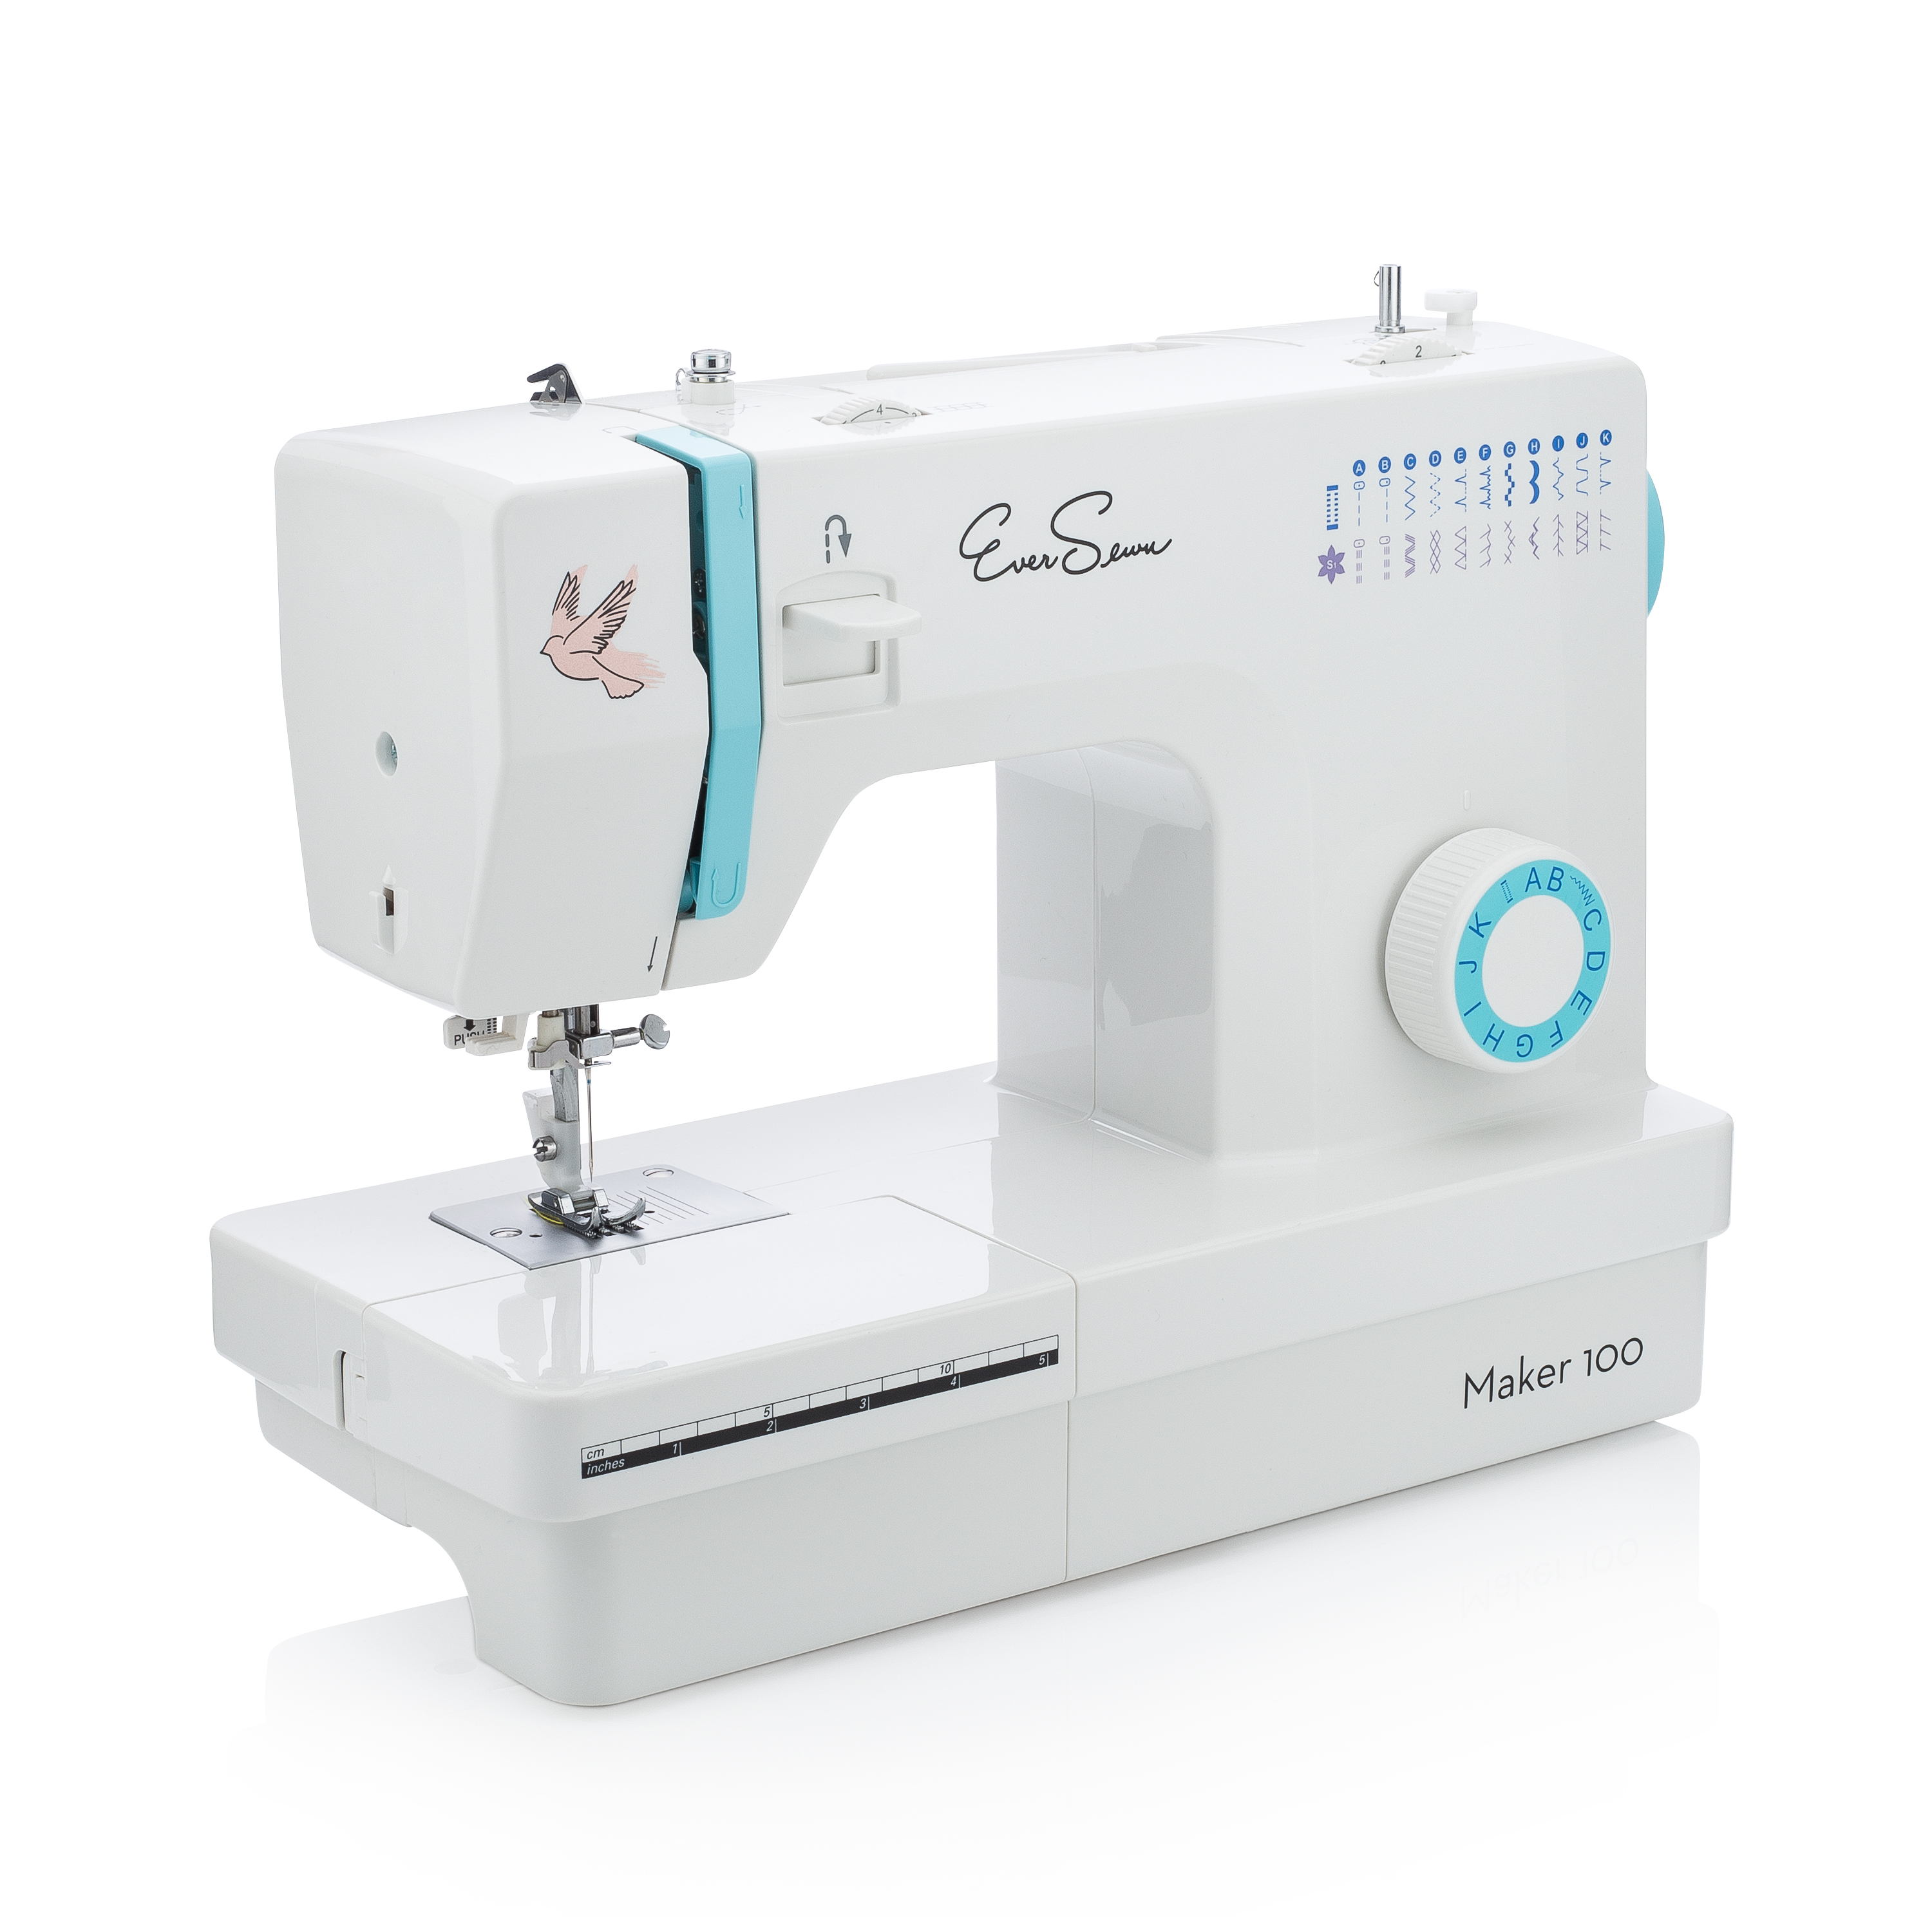 EverSewn Maker100 21-Stitch Robust Sewing Machine